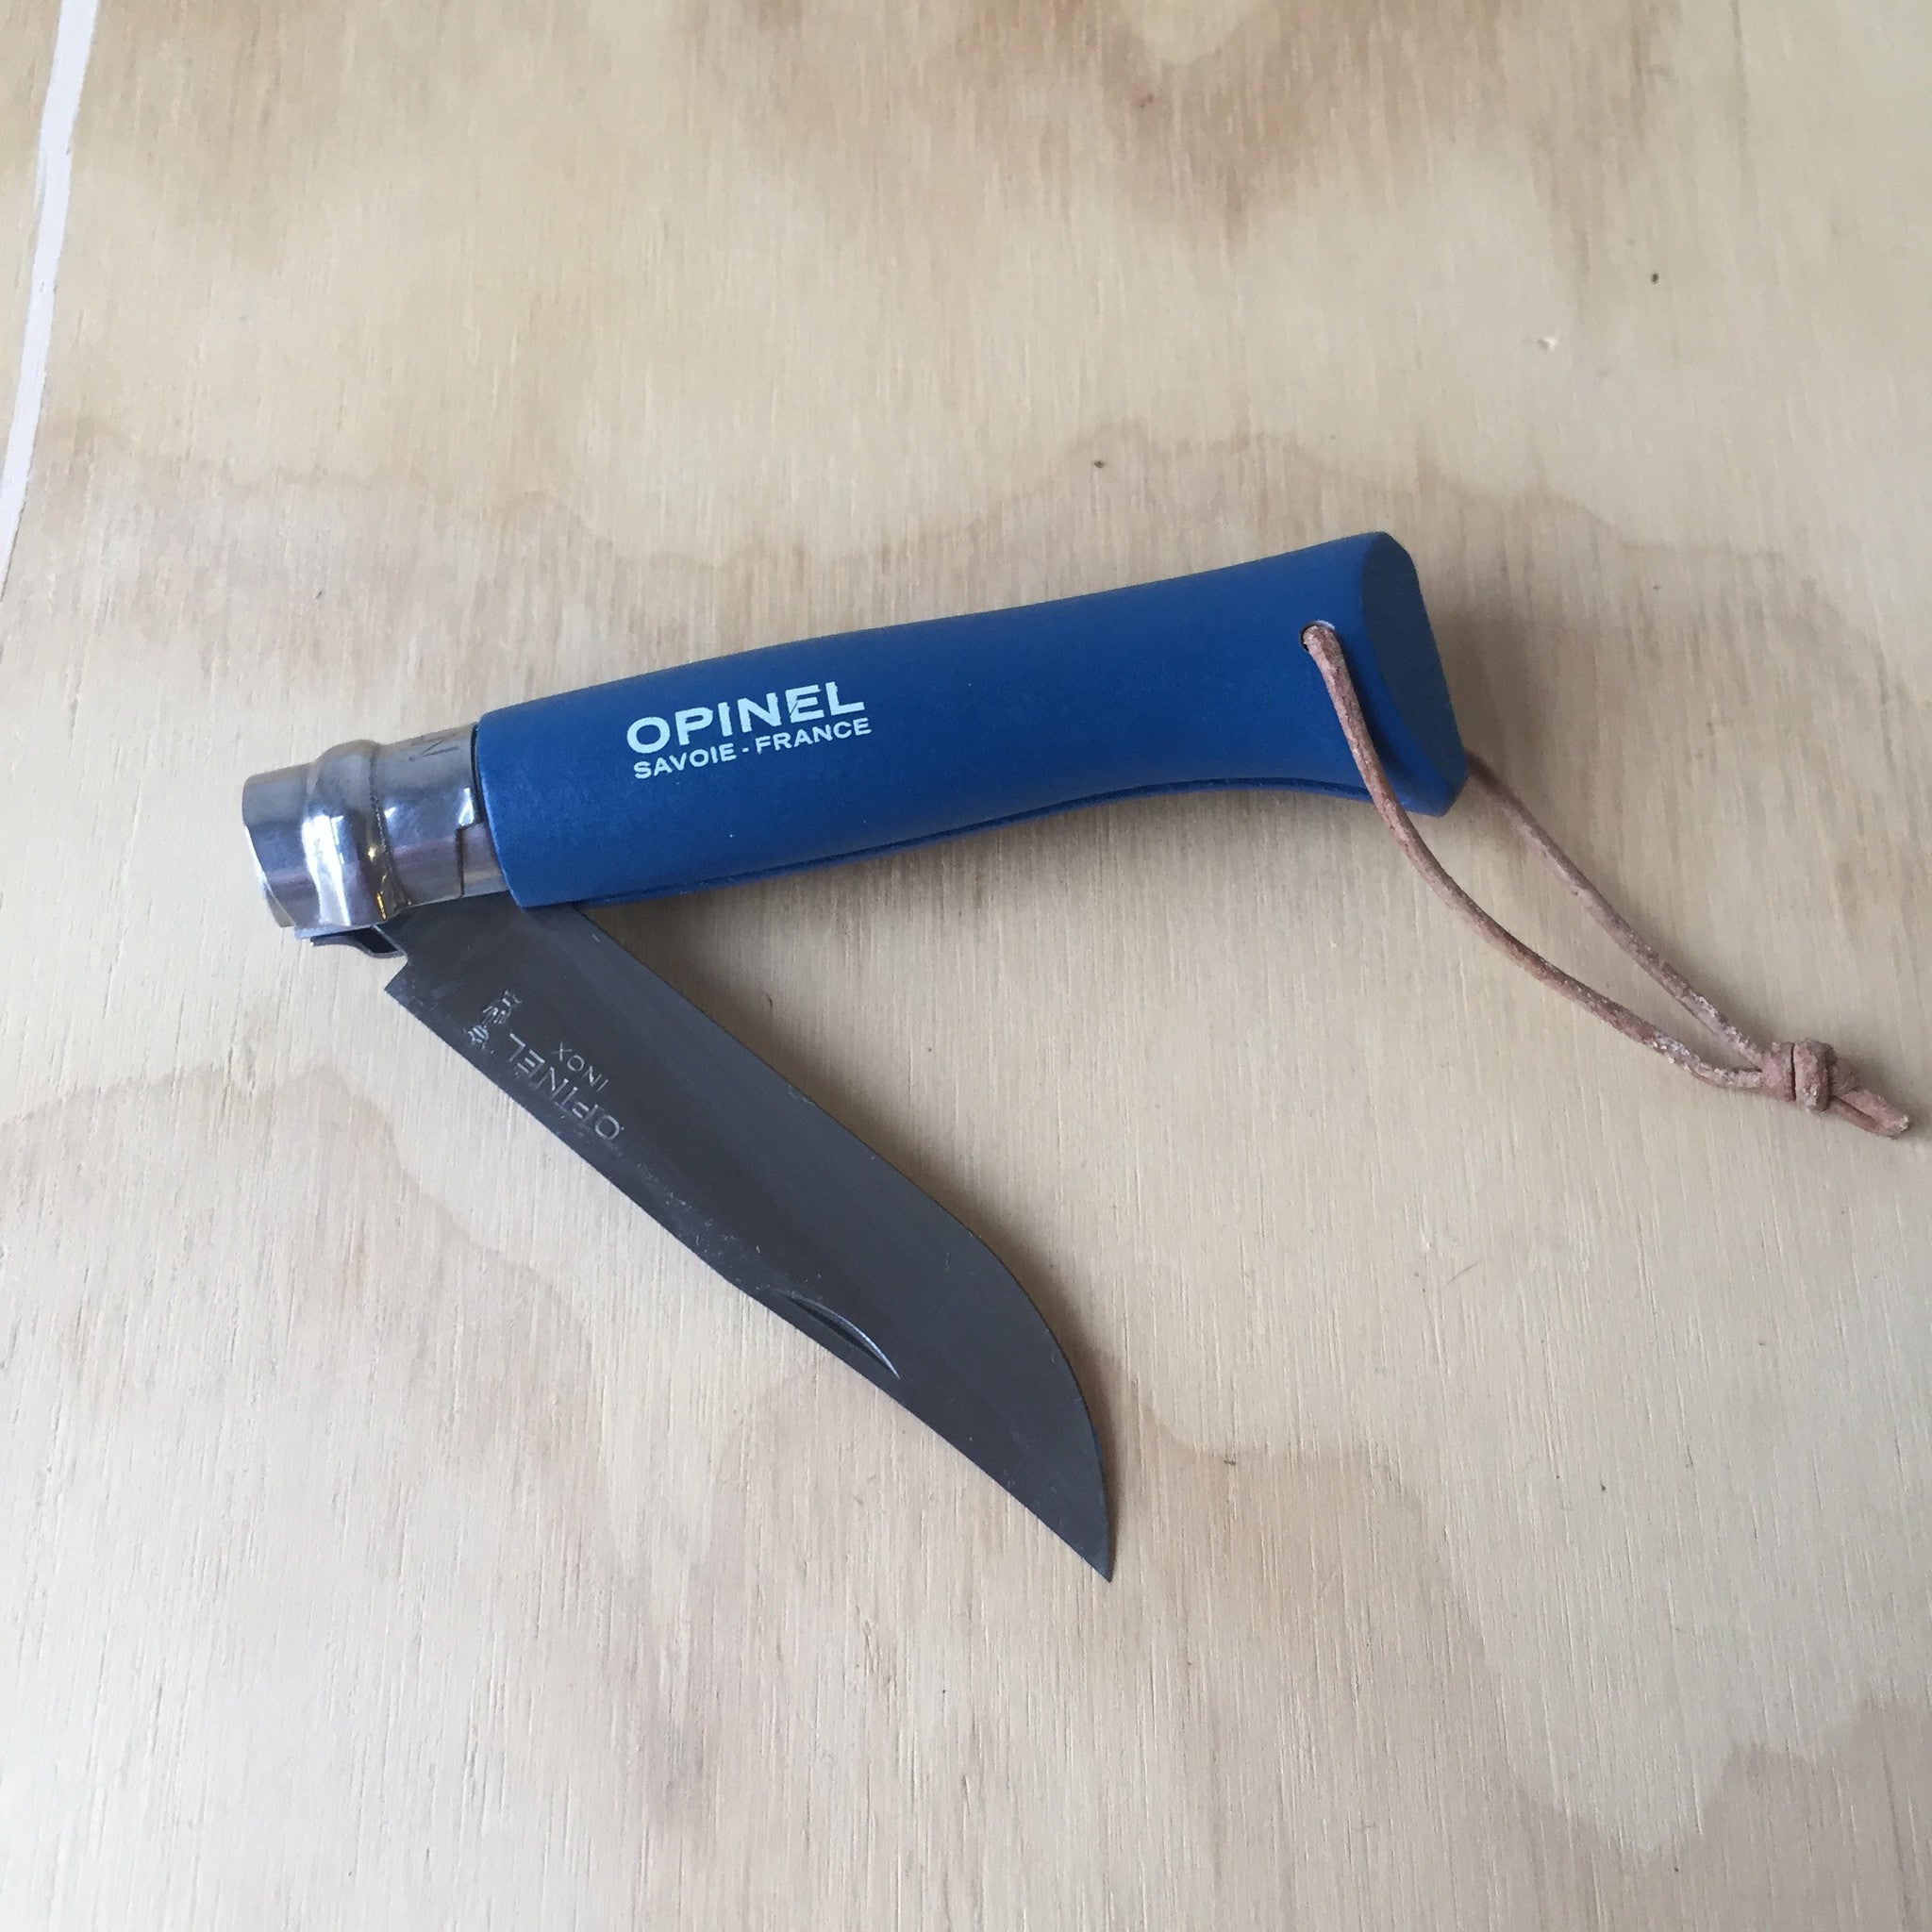 Opinel No. 8 Trekking Knife Blue - Upstate MN